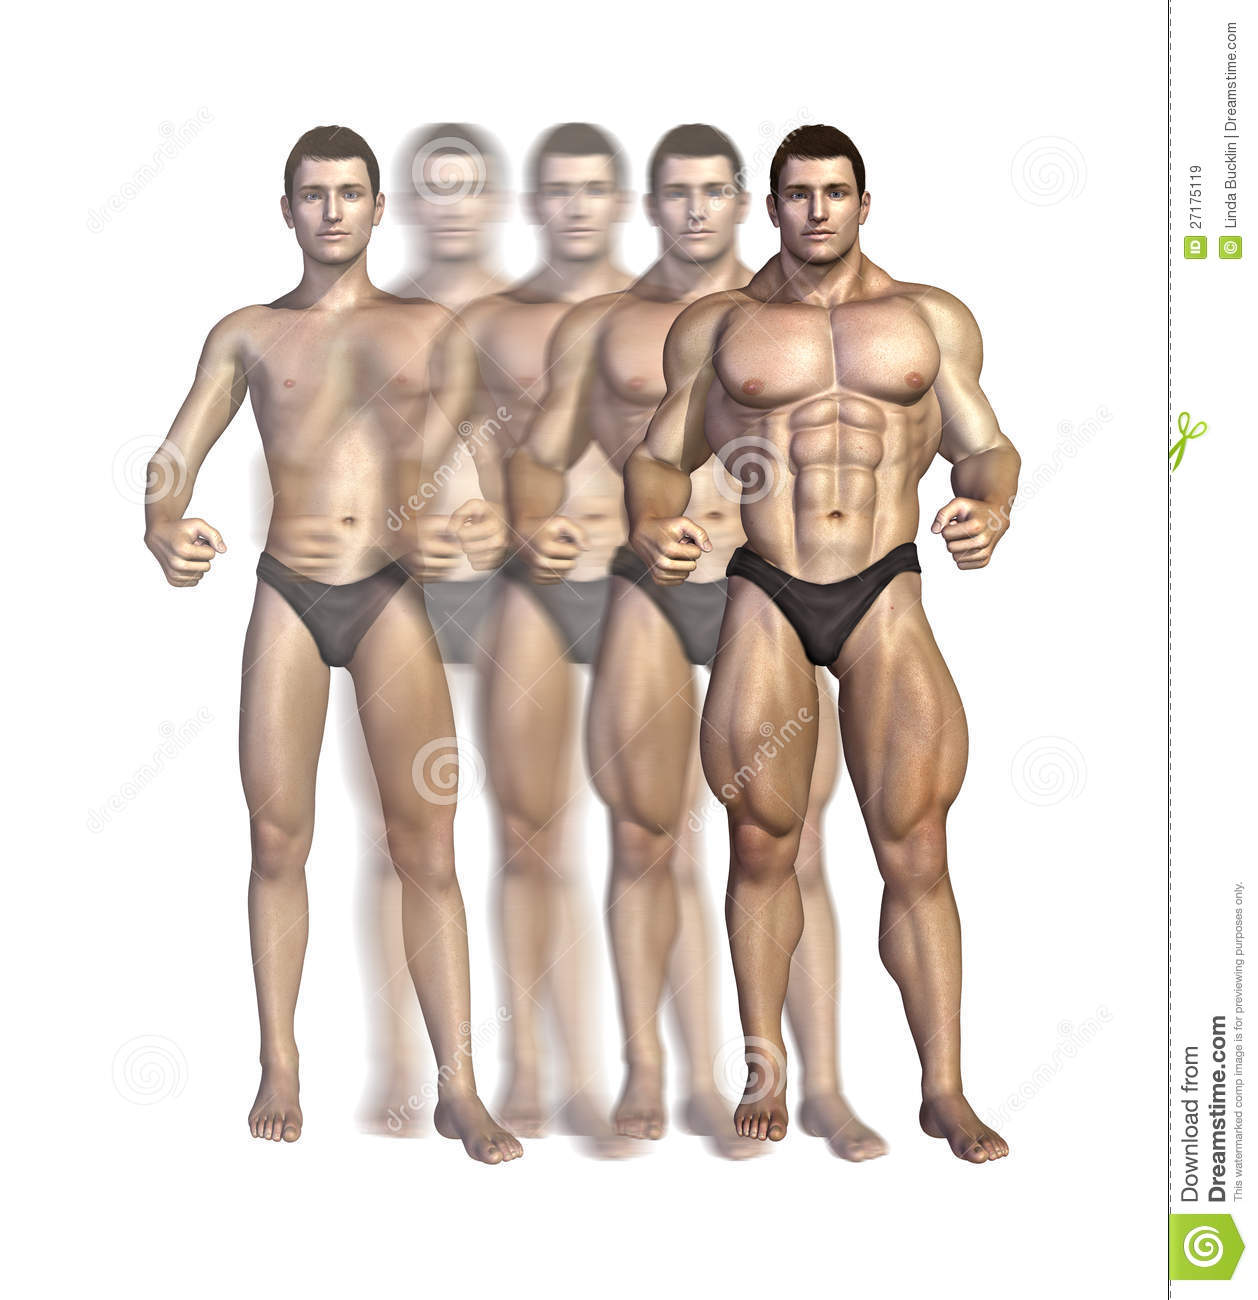 Transformação do Bodybuilder